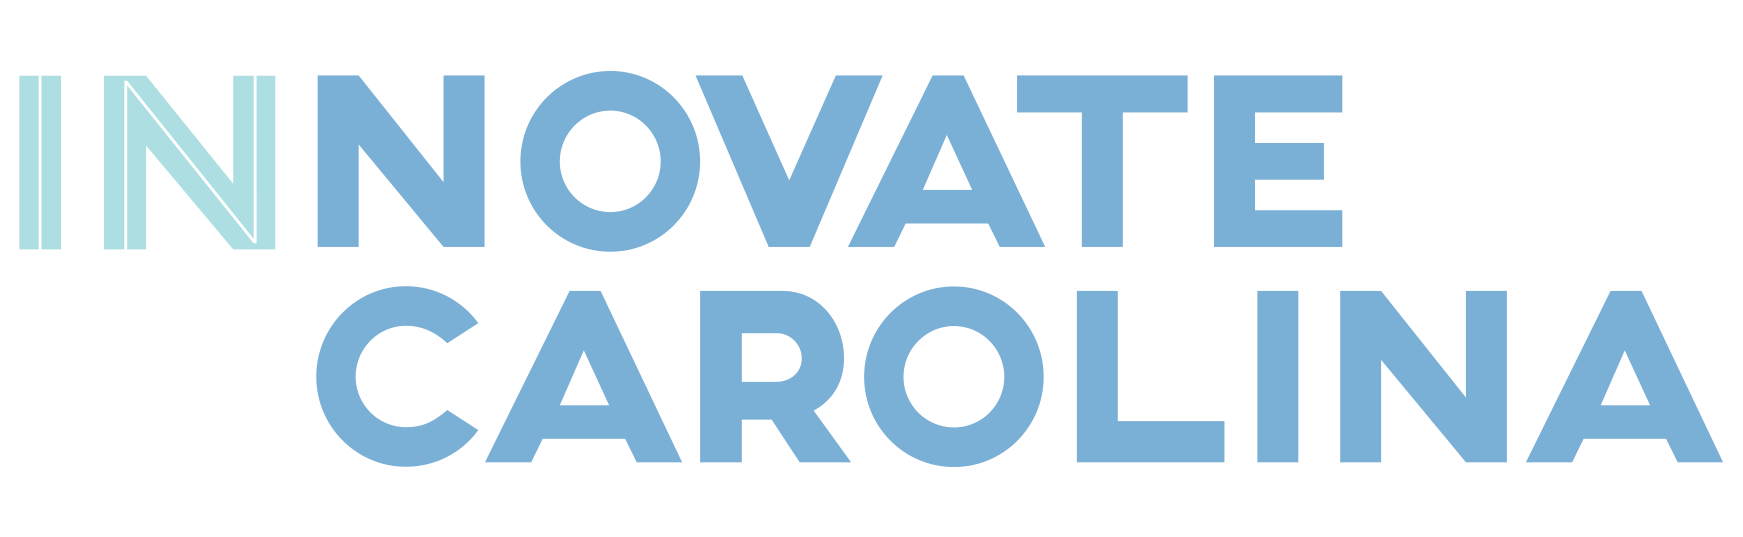 Innovate-Carolina-logo.png